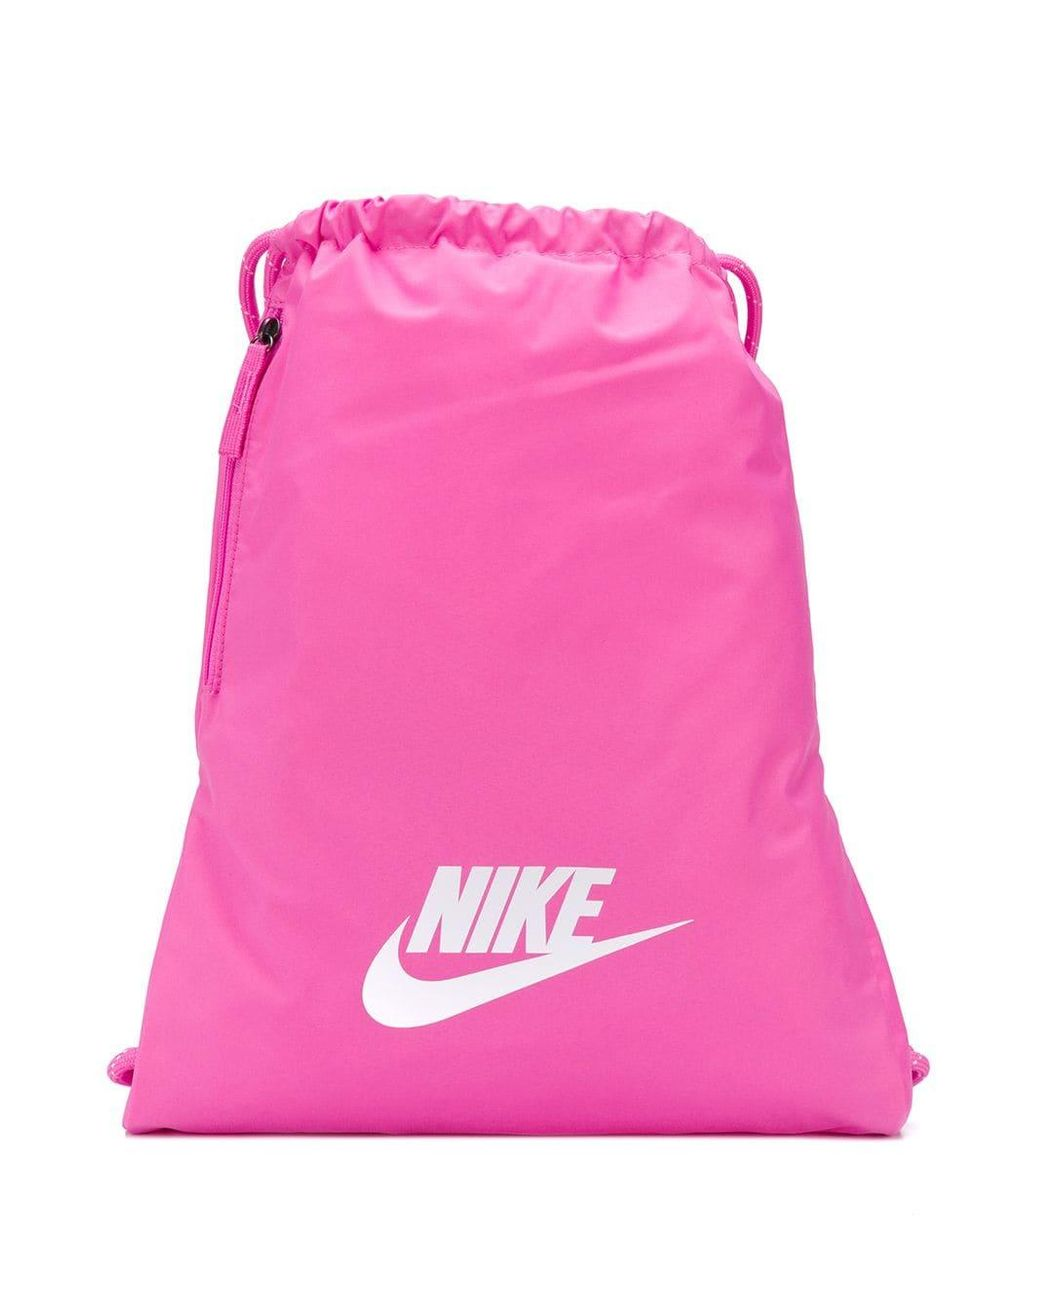 Nike Drawstring Backpack In Pink Lyst